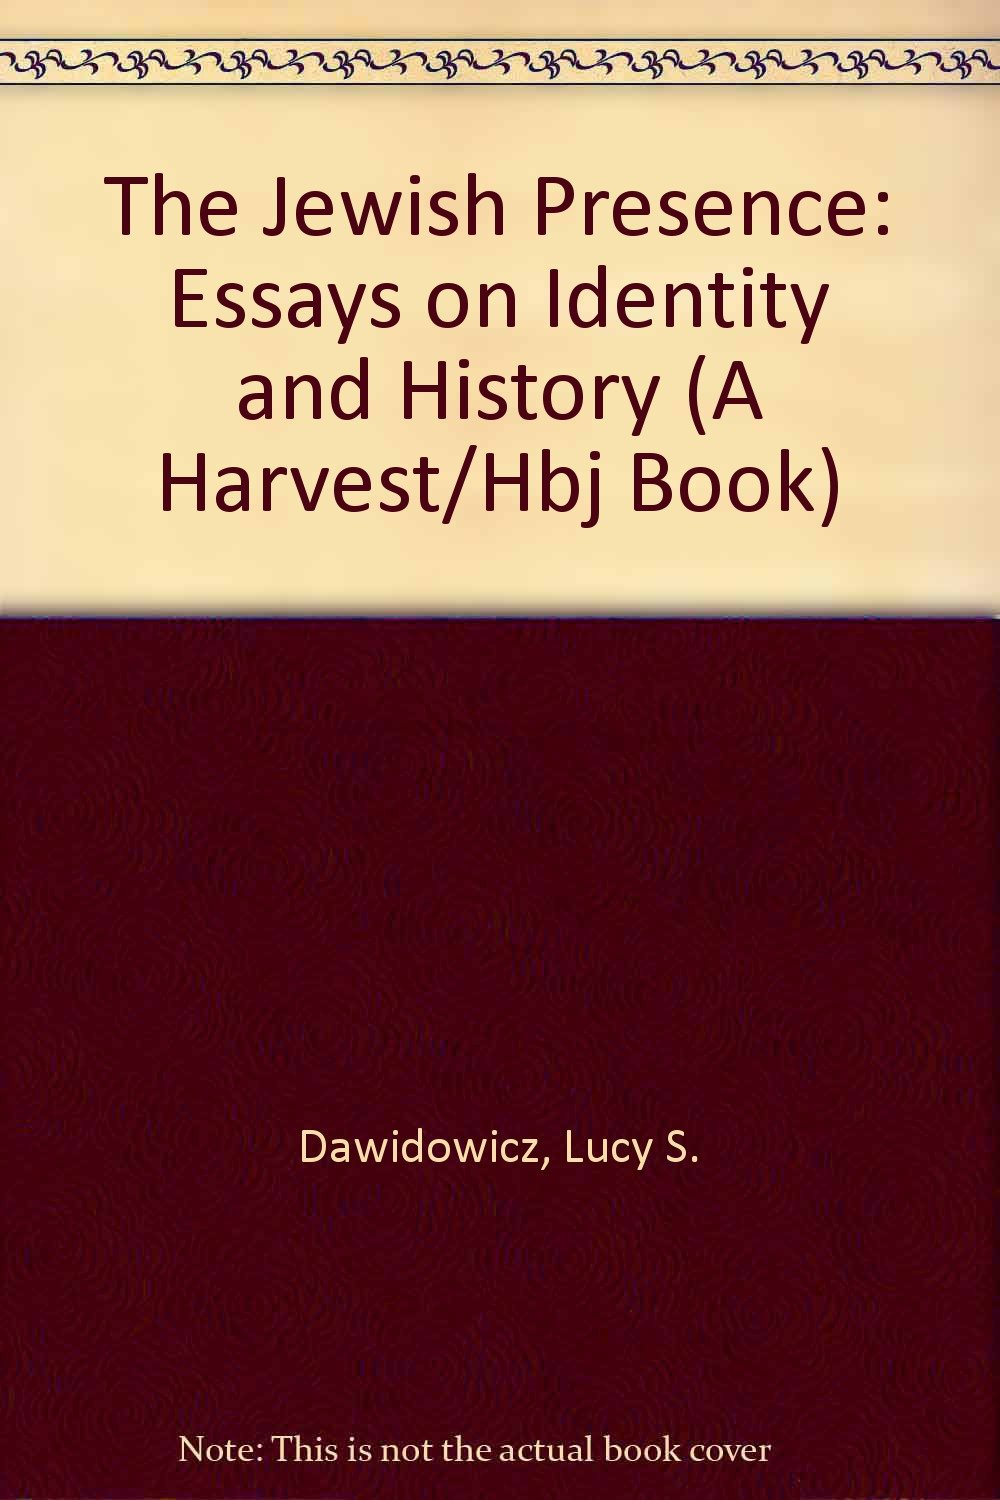 Healthy Eating Habits Essay The Jewish Presence Essays On Identity And History A Harvesthbj Book  Lucy S Dawidowicz  Amazoncom Books Argument Essay Thesis also Reflective Essay Thesis The Jewish Presence Essays On Identity And History A Harvesthbj  Health Insurance Essay